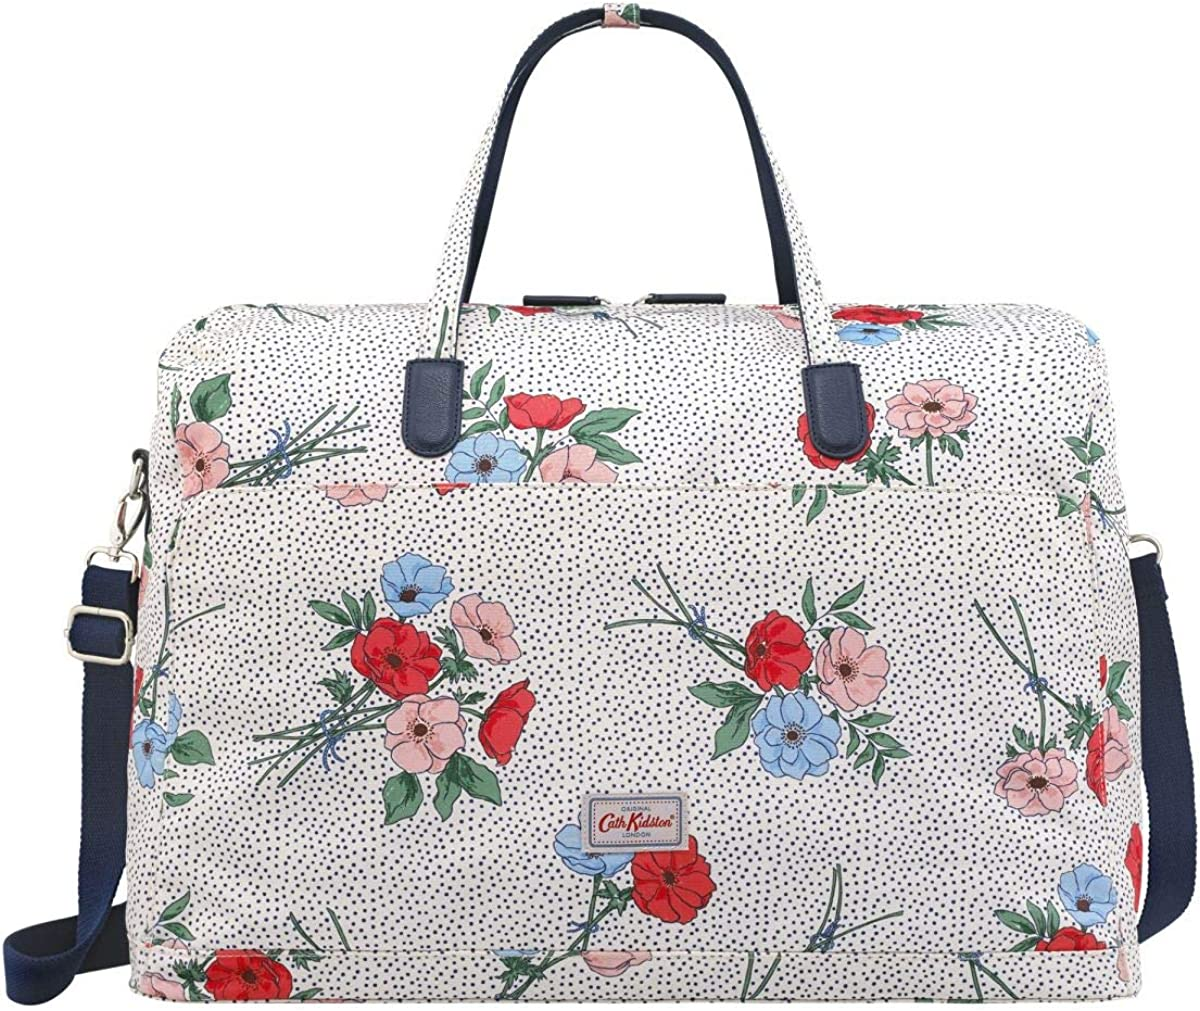 Multi 515610 Cath Kidston Book Bag With Gusset oc Robots